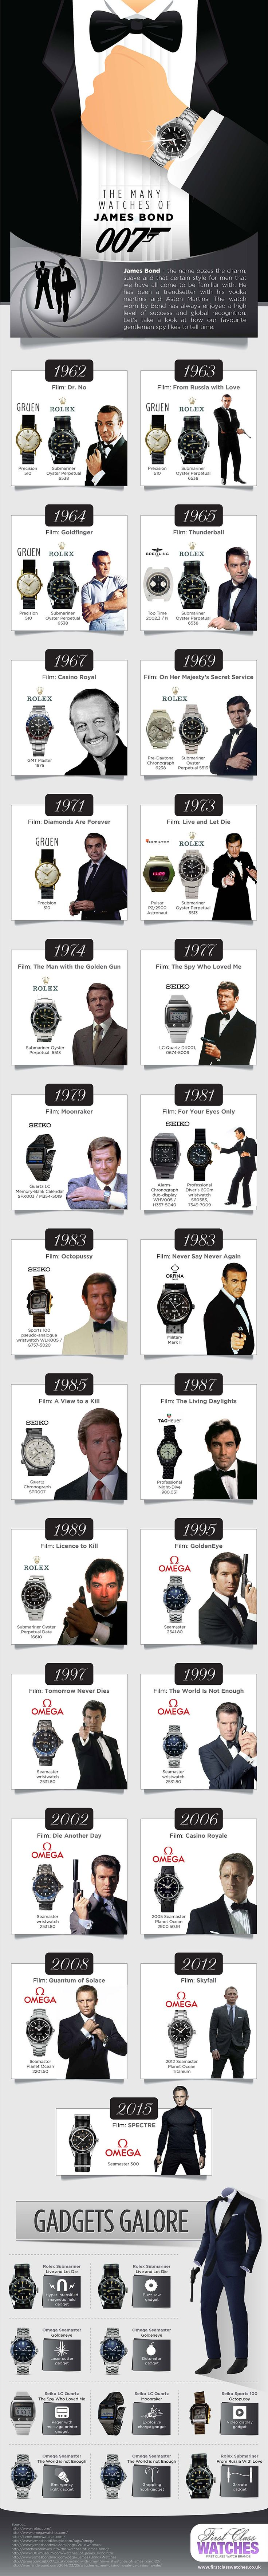 https://www.firstclasswatches.co.uk/blog/james-bond-spectre-infographic/ James Bond - the names oozes the charm, suave and that certain style for men that we have all come to be familiar with. He has been a trendsetter with his vodka martinis and Aston Martins. The watch worn by Bond has always enjoyed a high level of success and global recognition. Let's take a look at how our favourite gentlemen spy likes to tell time.